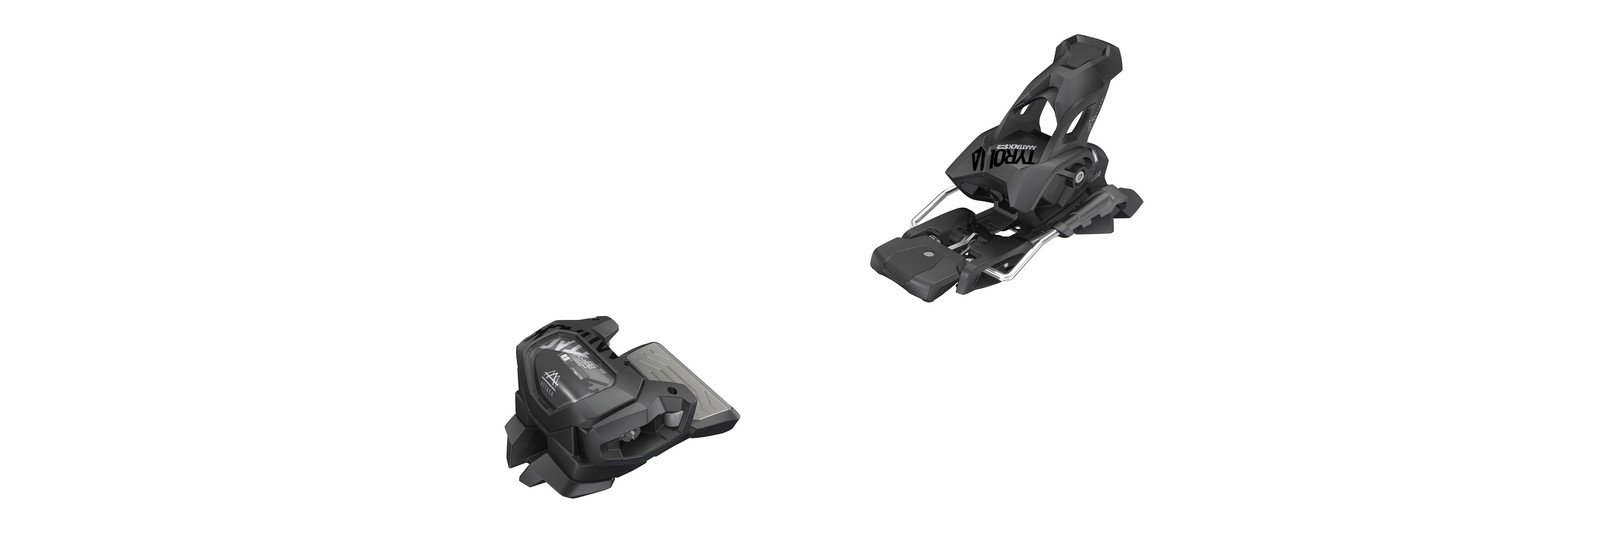 2021 Tyrolia Attack 2 13 GW Ski Bindings